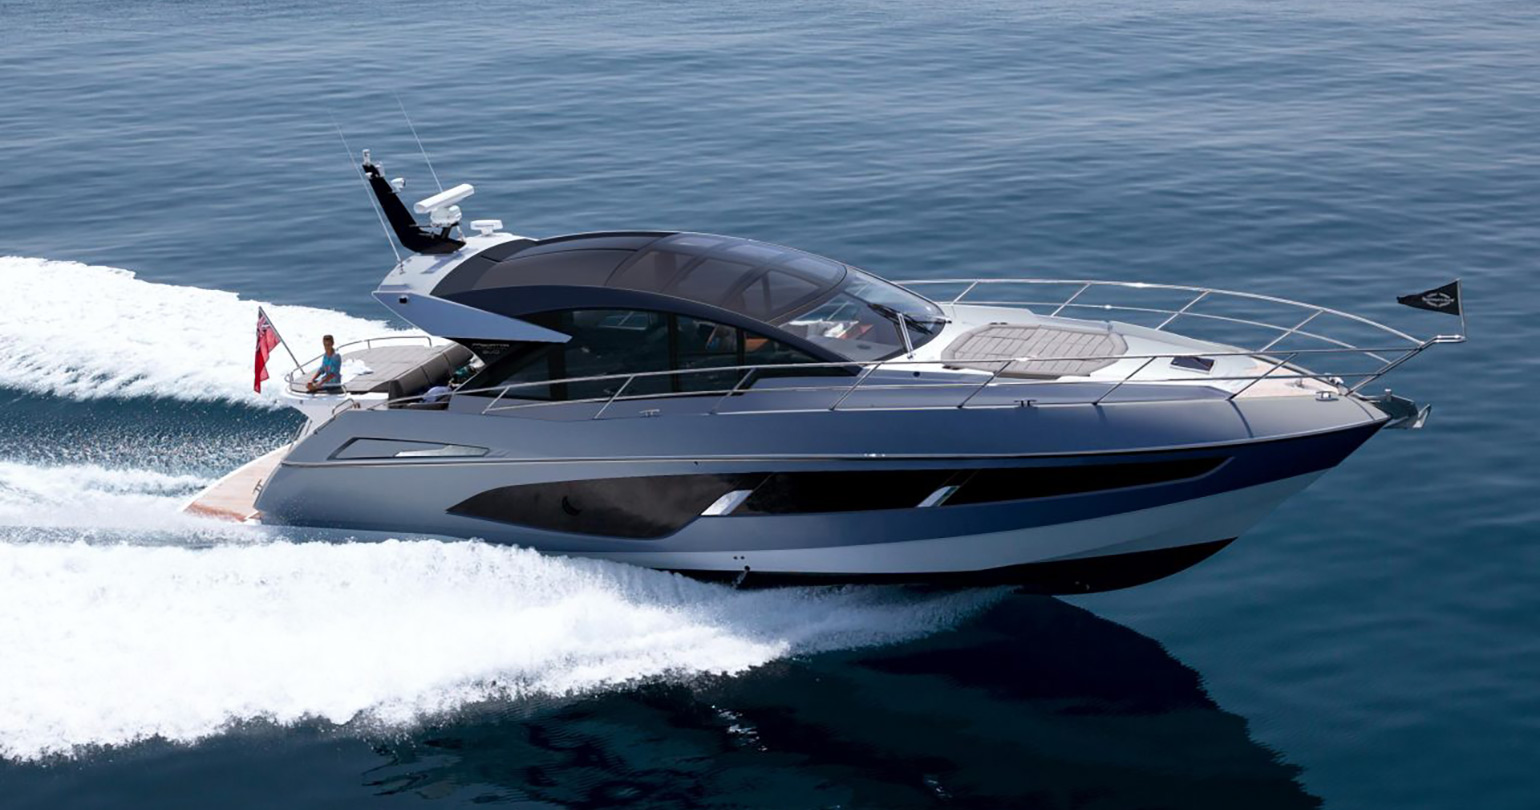 New models by Sunseeker at the autumn boat shows